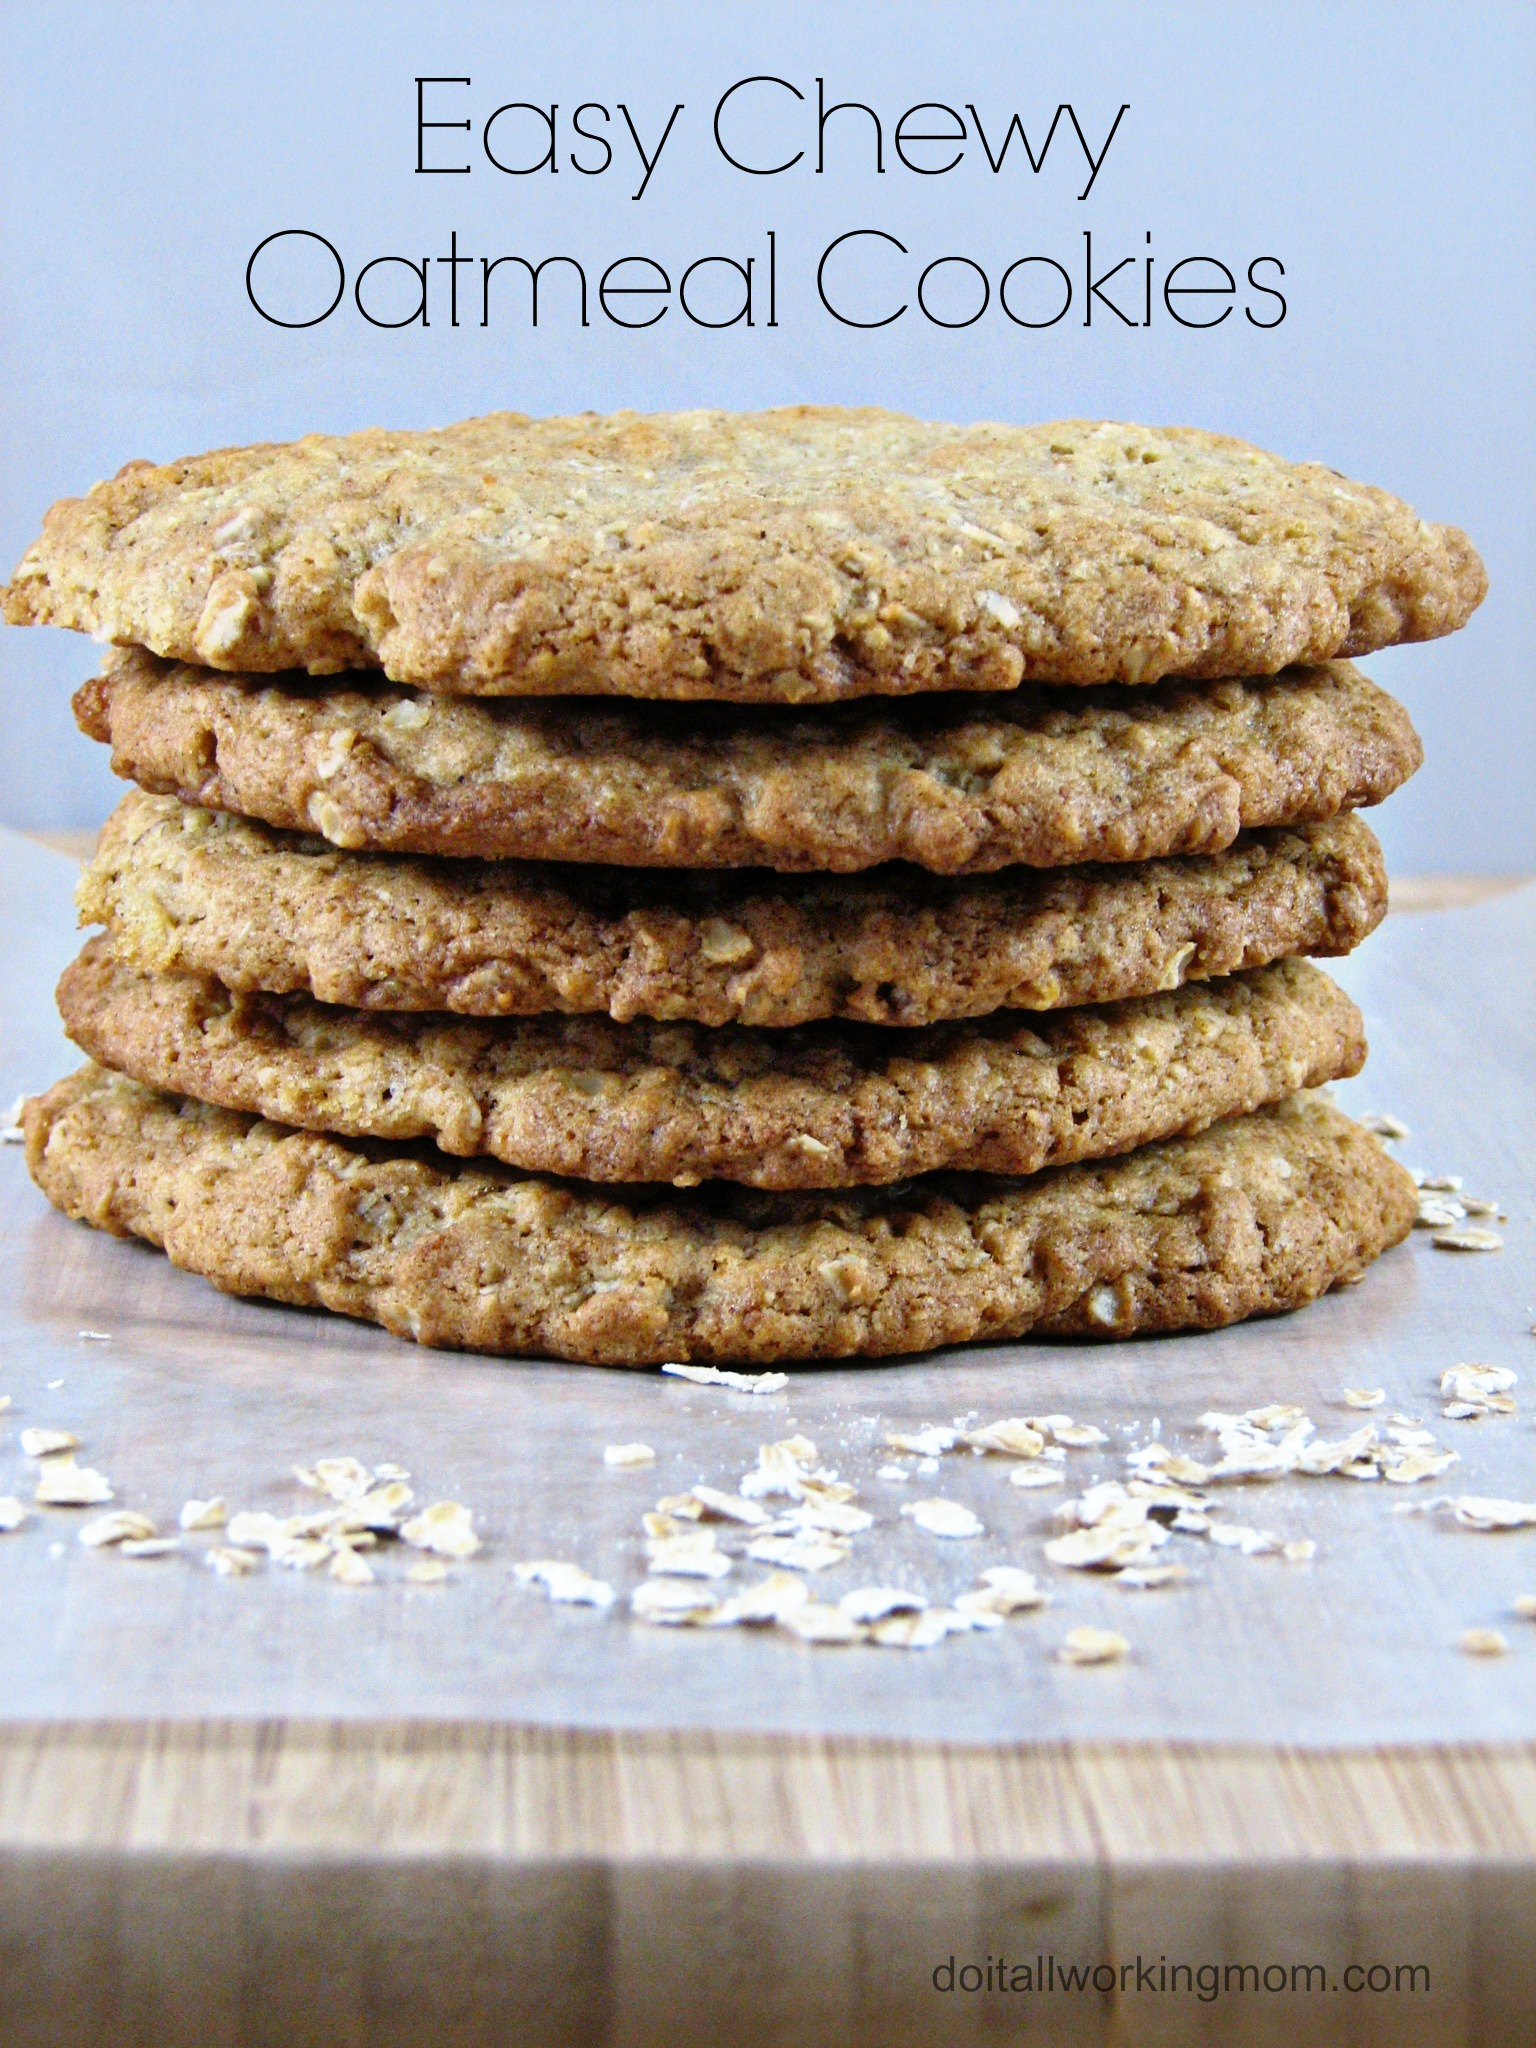 Easy Chewy Oatmeal Cookies